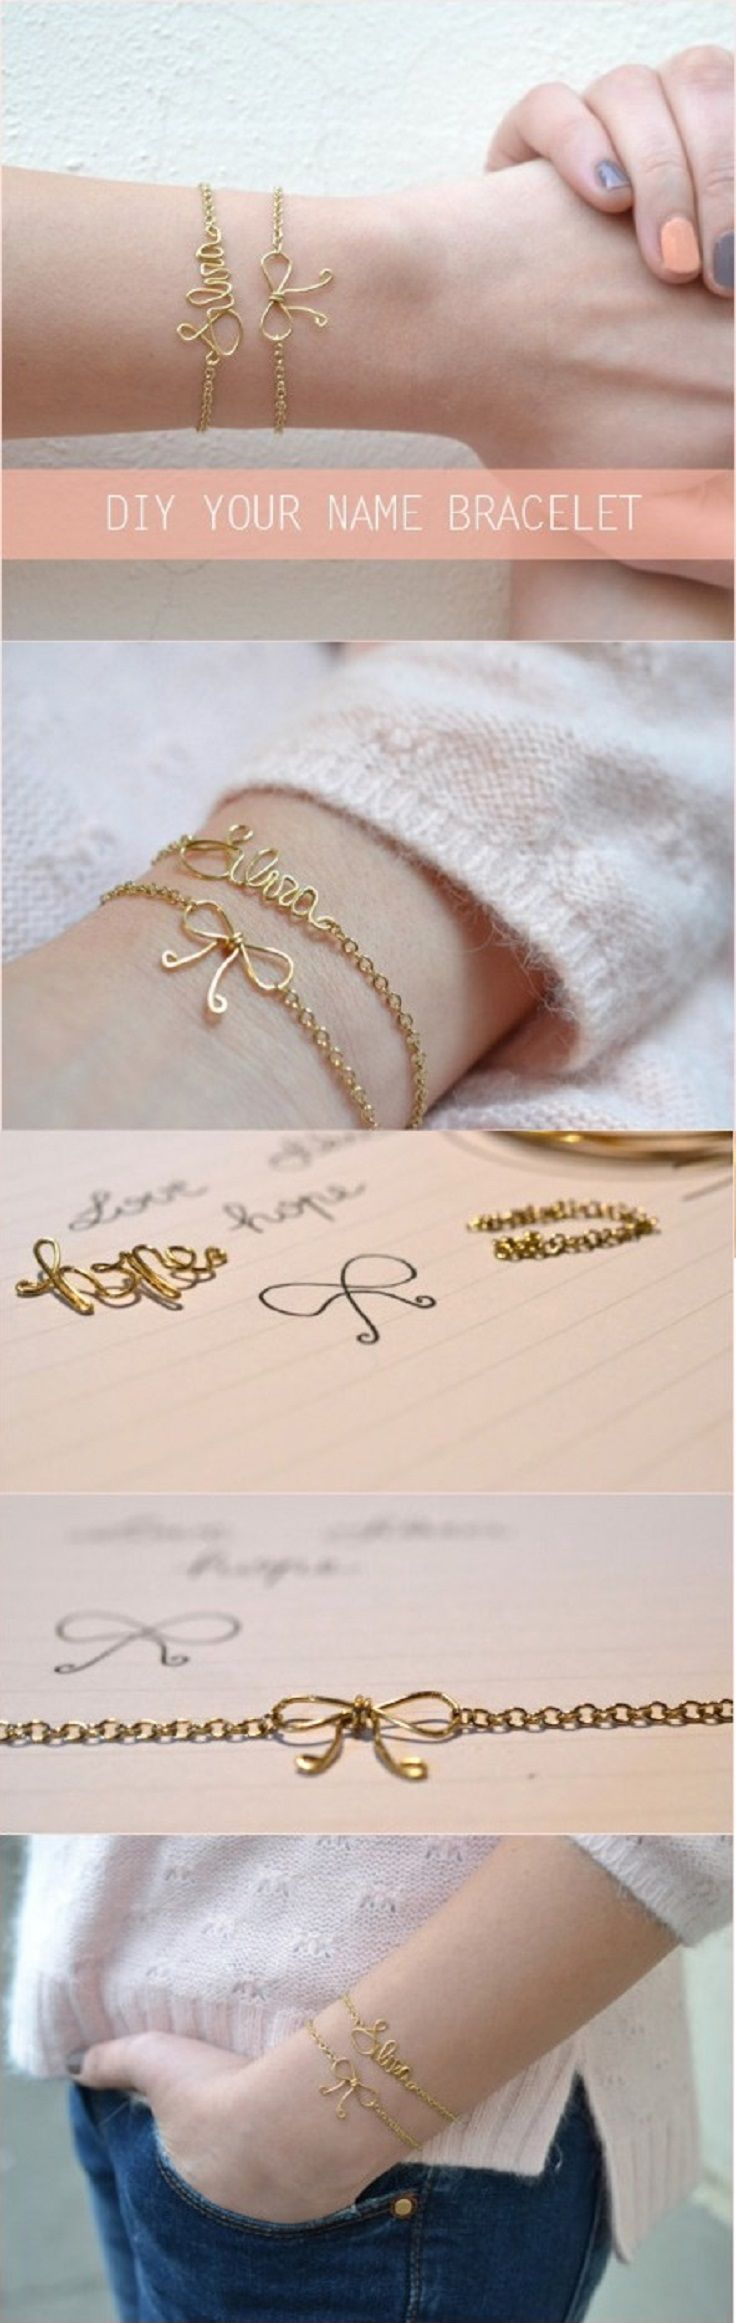 DIY Your Name Wire Bracelet. Use wire to wrap your name and a little cute bow for your homemade bracelet. Look awesome and chic on your wrist. Start to make your own now!